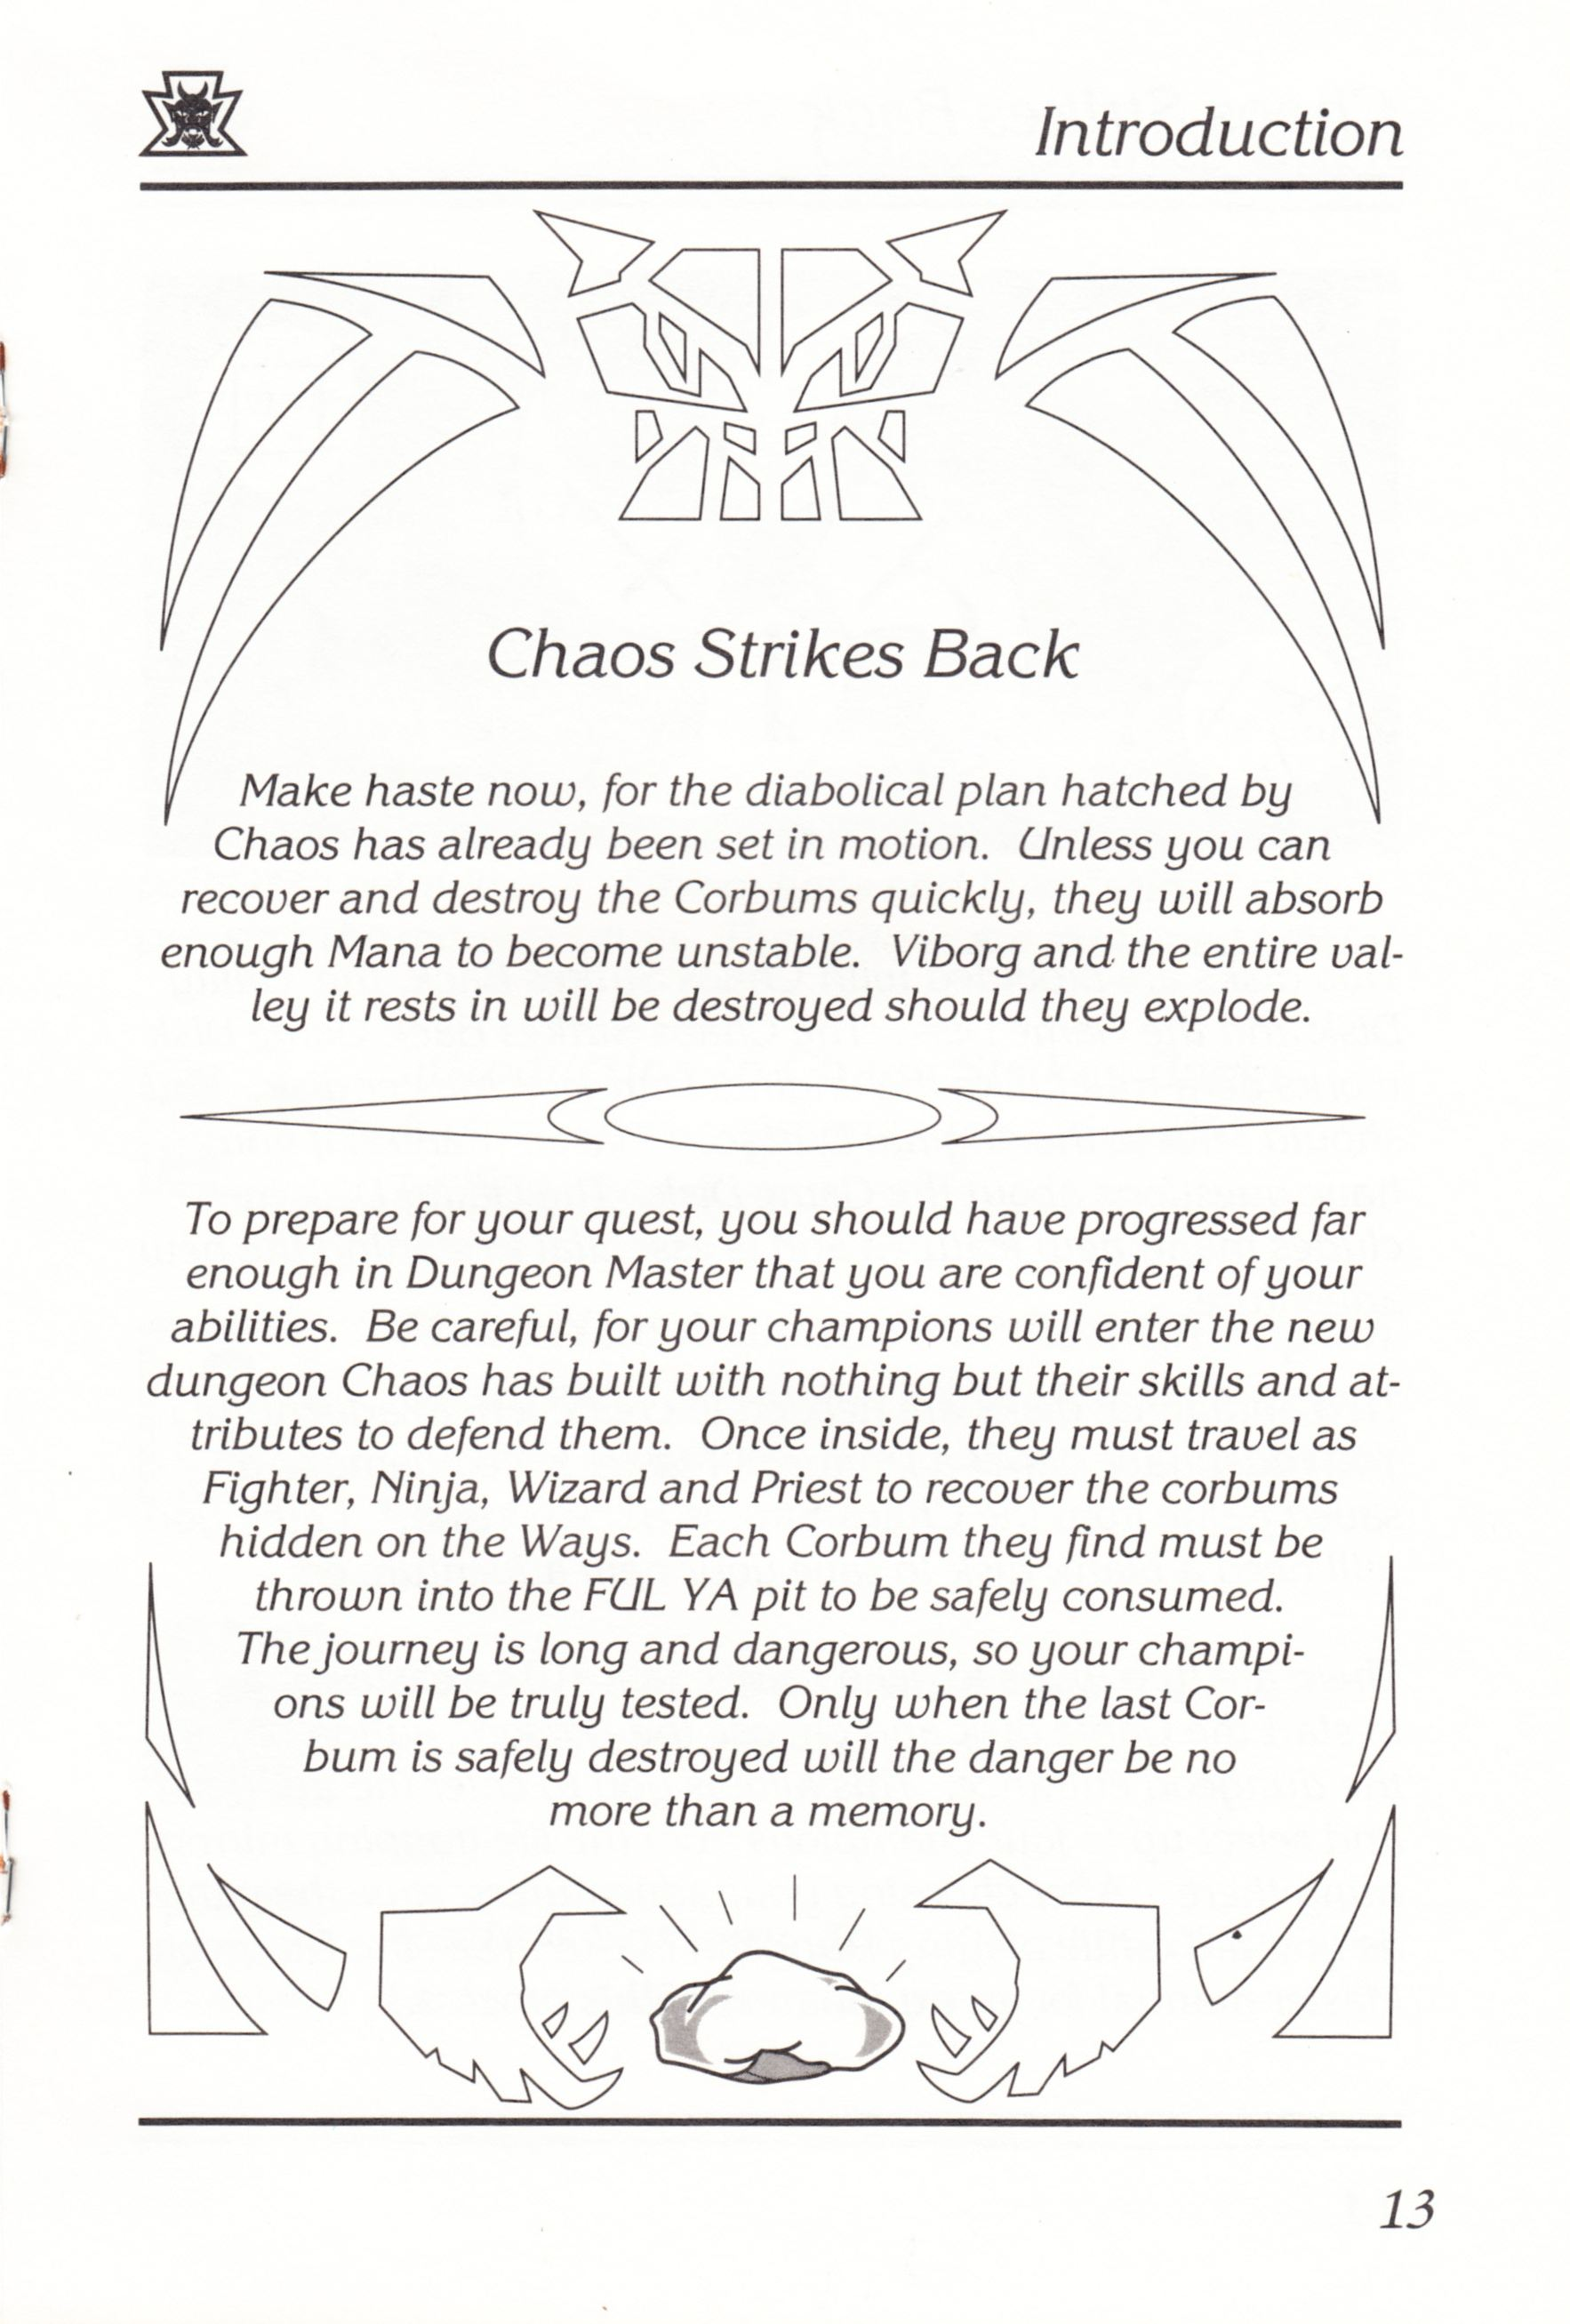 Game - Chaos Strikes Back - UK - Atari ST - Manual - Page 015 - Scan